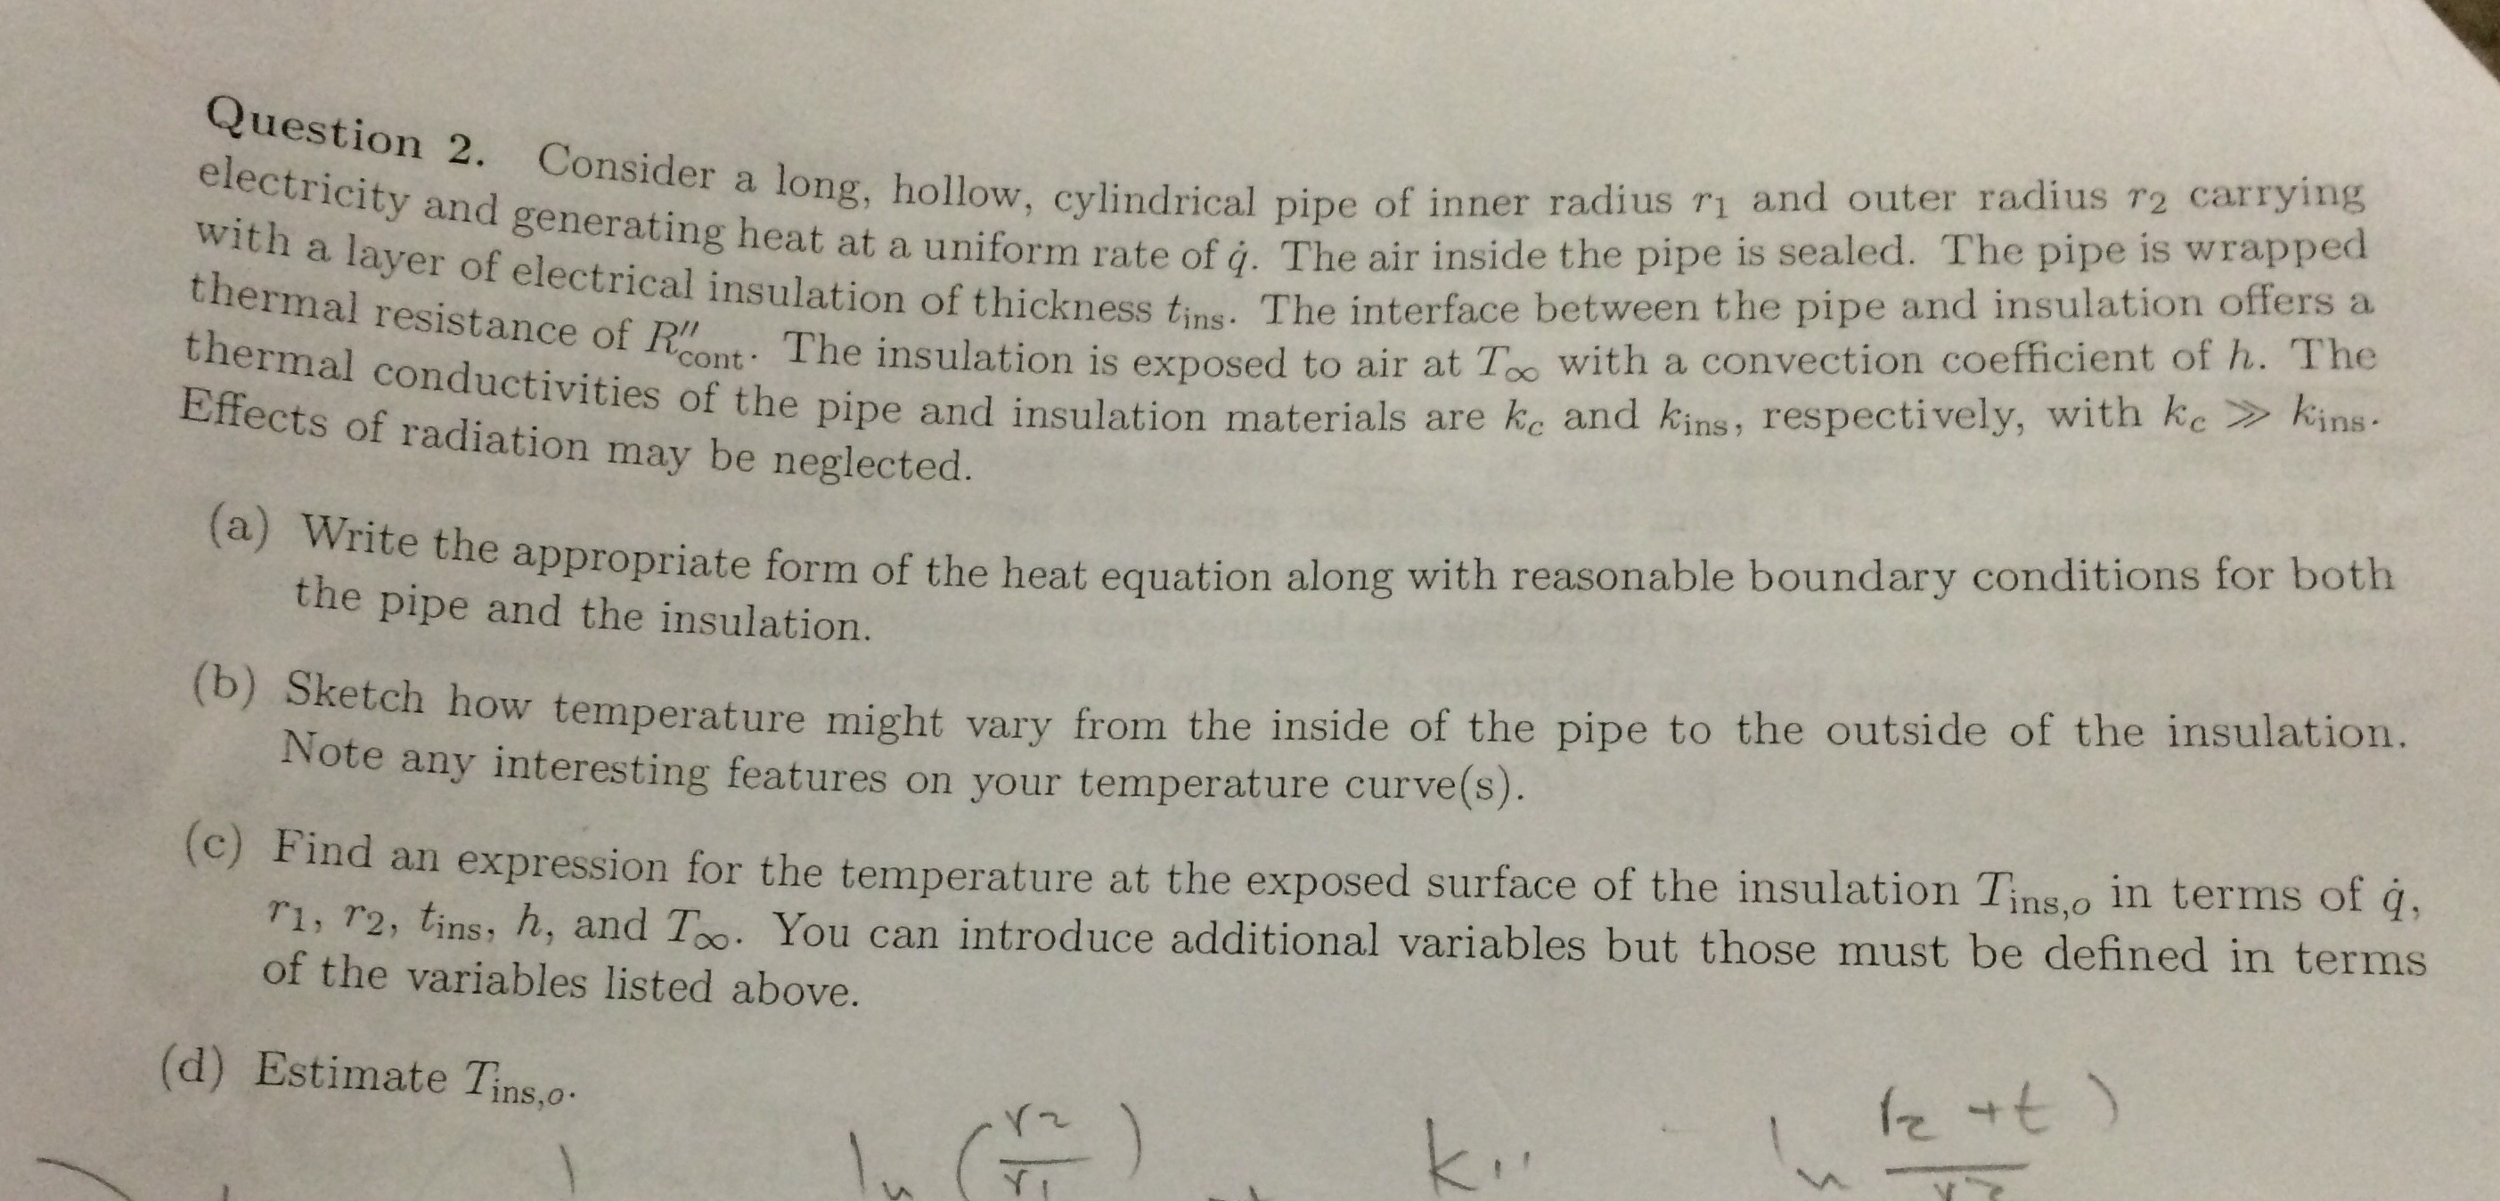 Consider a long hollow cylindrical pipe of inner